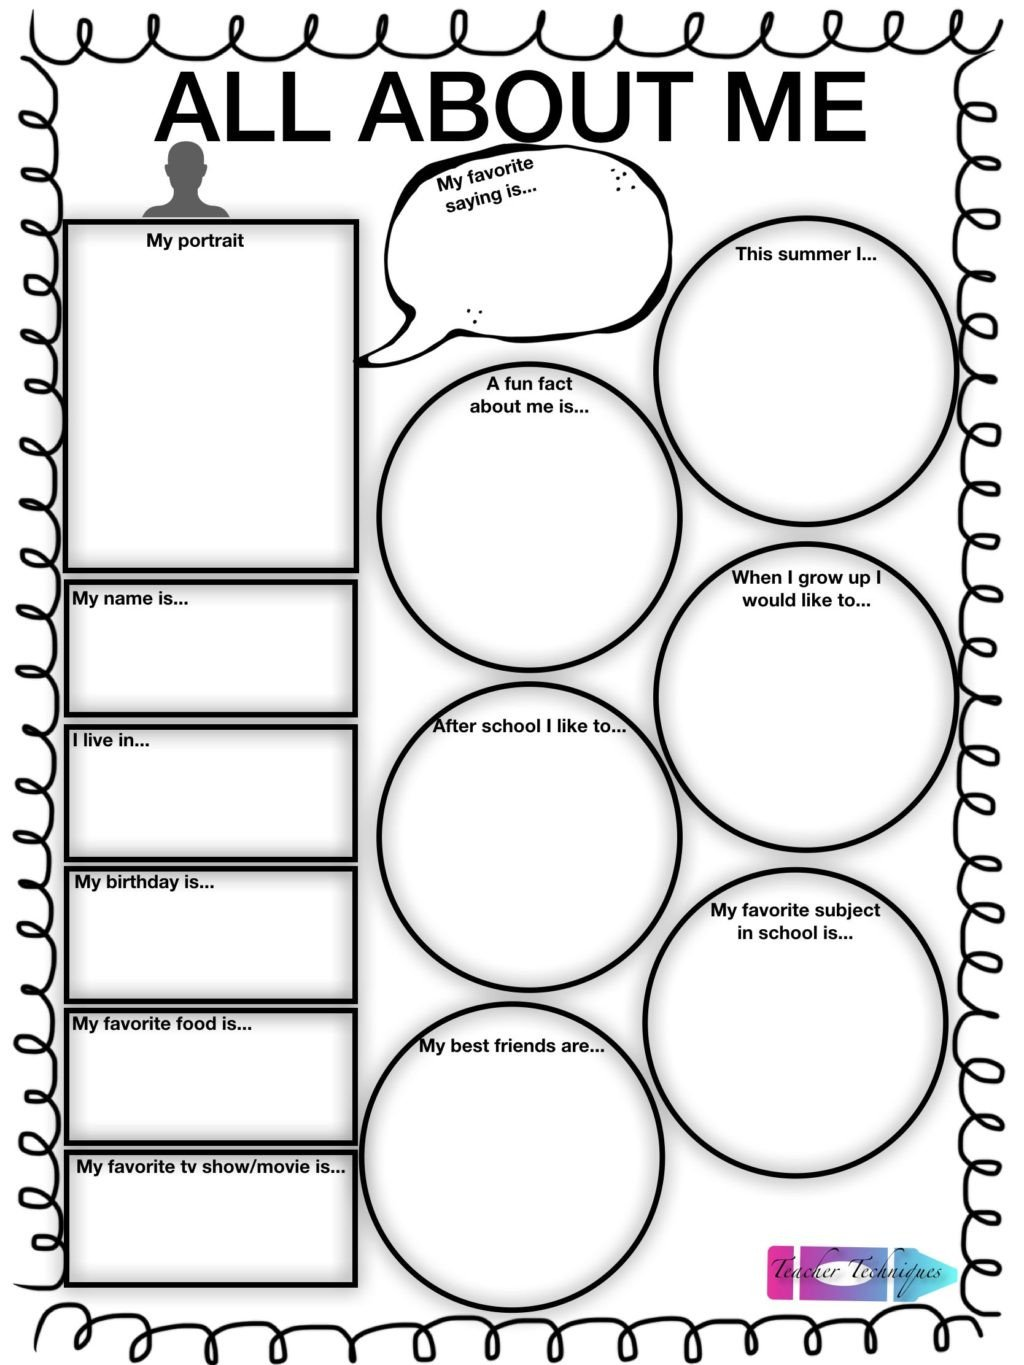 2nd grade math worksheets 10th grade math worksheets with answer 3